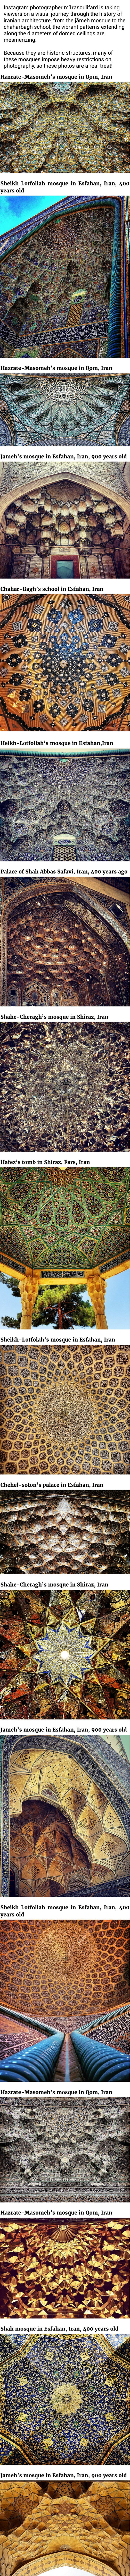 Iranian mosque ceilings